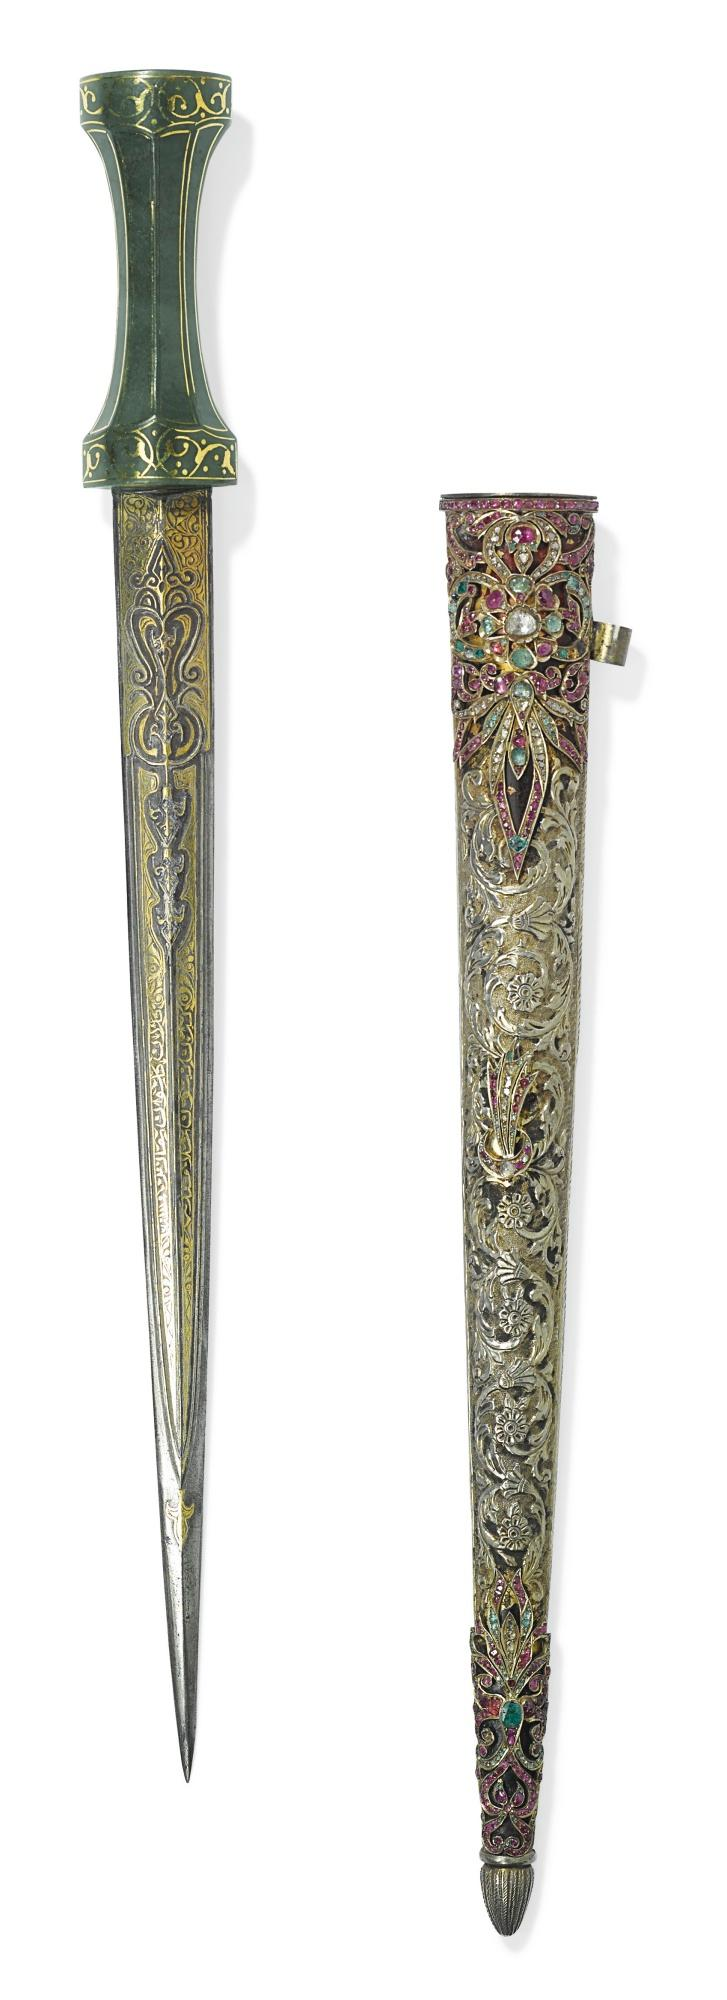 AN OTTOMAN JADE-HILTED DAGGER WITH GEM-SET SCABBARD, WITH CASE, TURKEY, 18TH/19TH CENTURY |